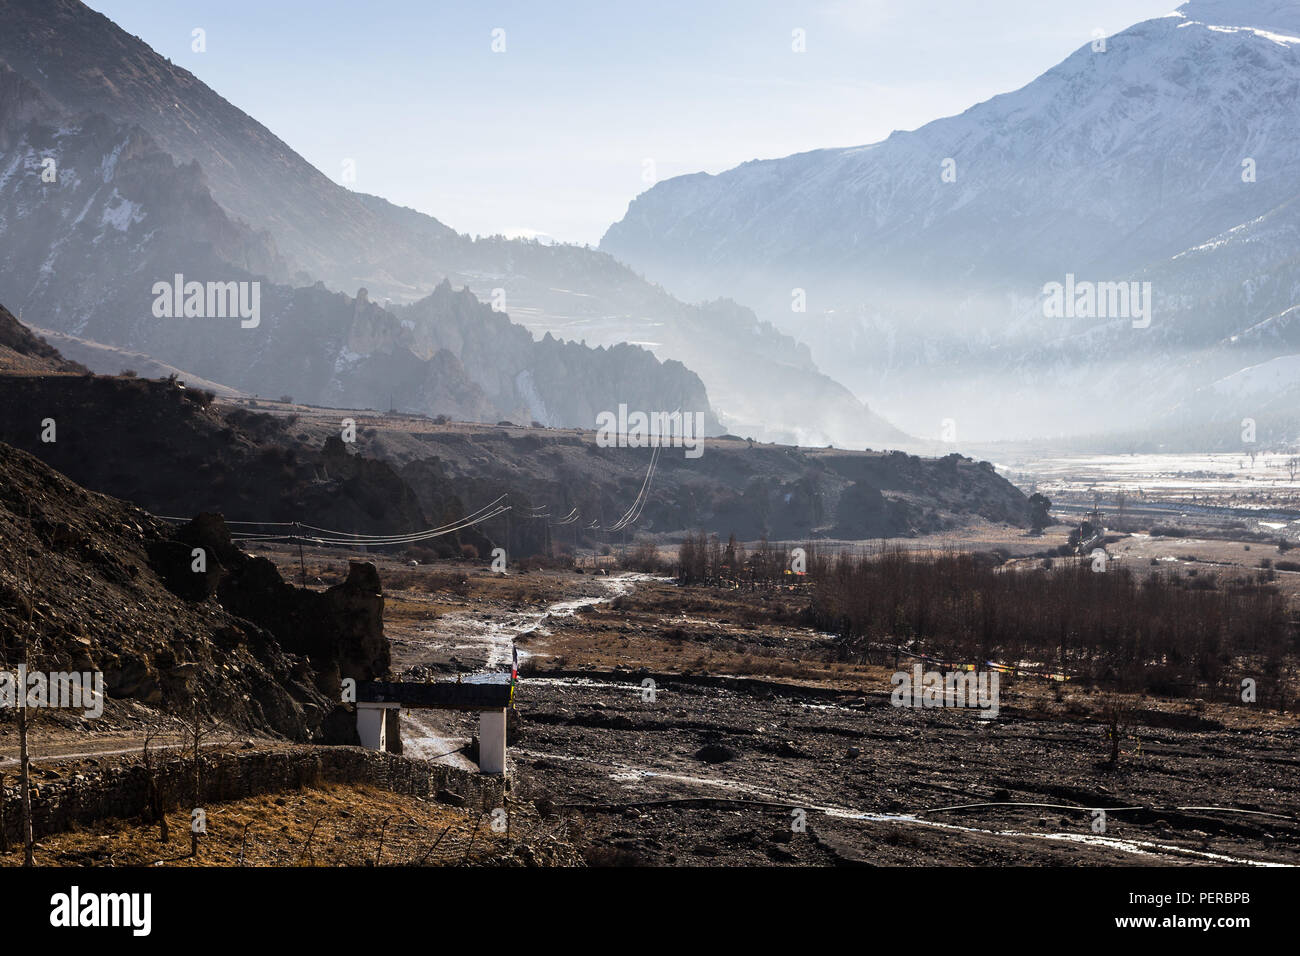 Morning dream like atmosphere along the Annapurna circuit hiking trail just out of Manang in the Himalayas in Nepal - Stock Image